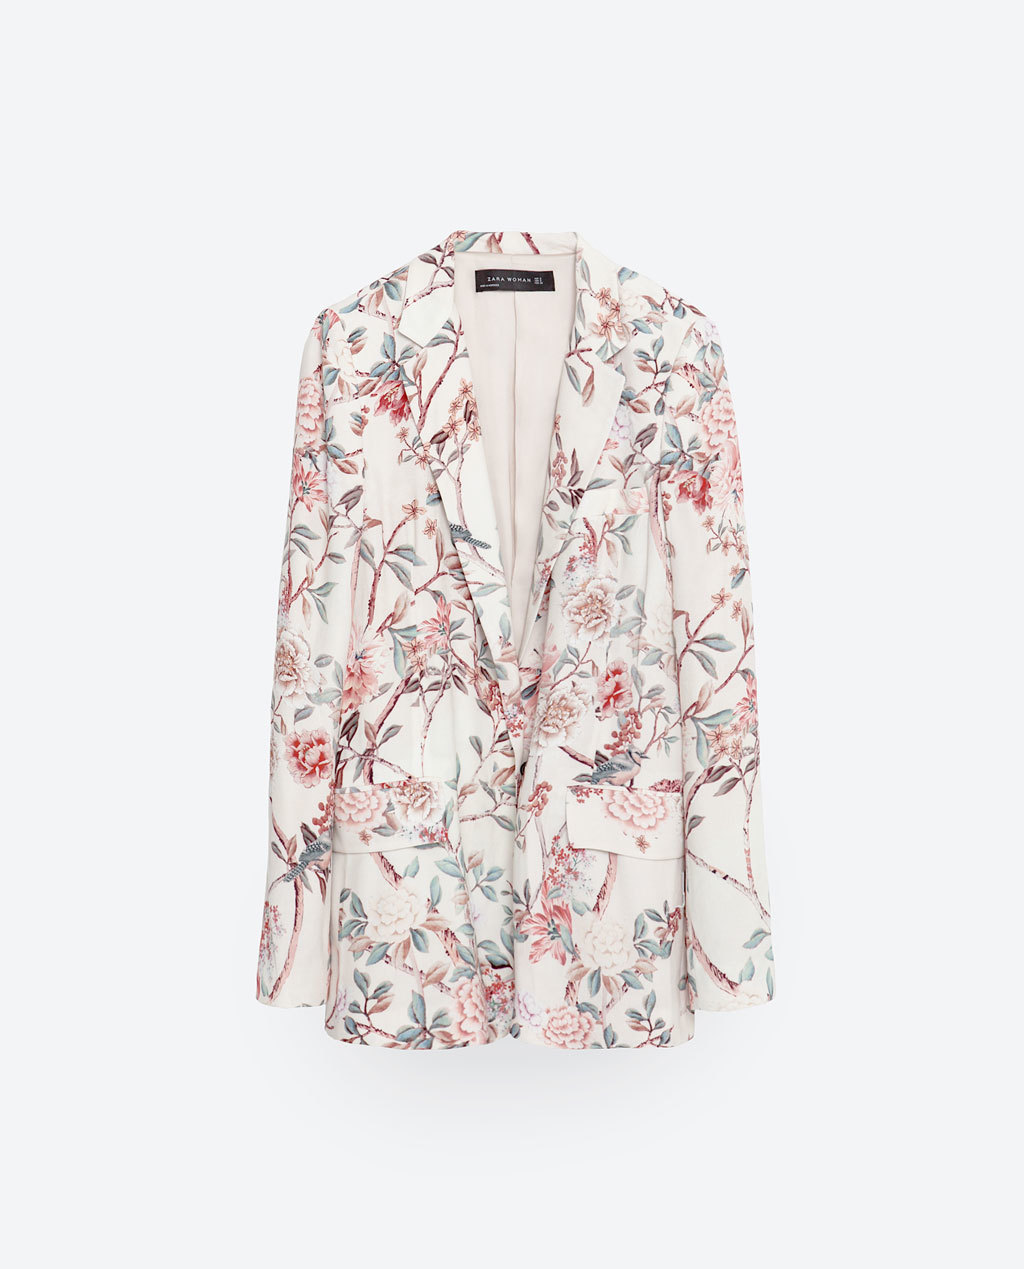 Long Printed Jacket - style: single breasted blazer; length: below the bottom; collar: standard lapel/rever collar; predominant colour: ivory/cream; secondary colour: terracotta; occasions: casual, creative work; fit: tailored/fitted; fibres: polyester/polyamide - 100%; sleeve length: long sleeve; sleeve style: standard; collar break: low/open; pattern type: fabric; pattern: florals; texture group: woven light midweight; multicoloured: multicoloured; season: s/s 2016; wardrobe: highlight; embellishment location: hip